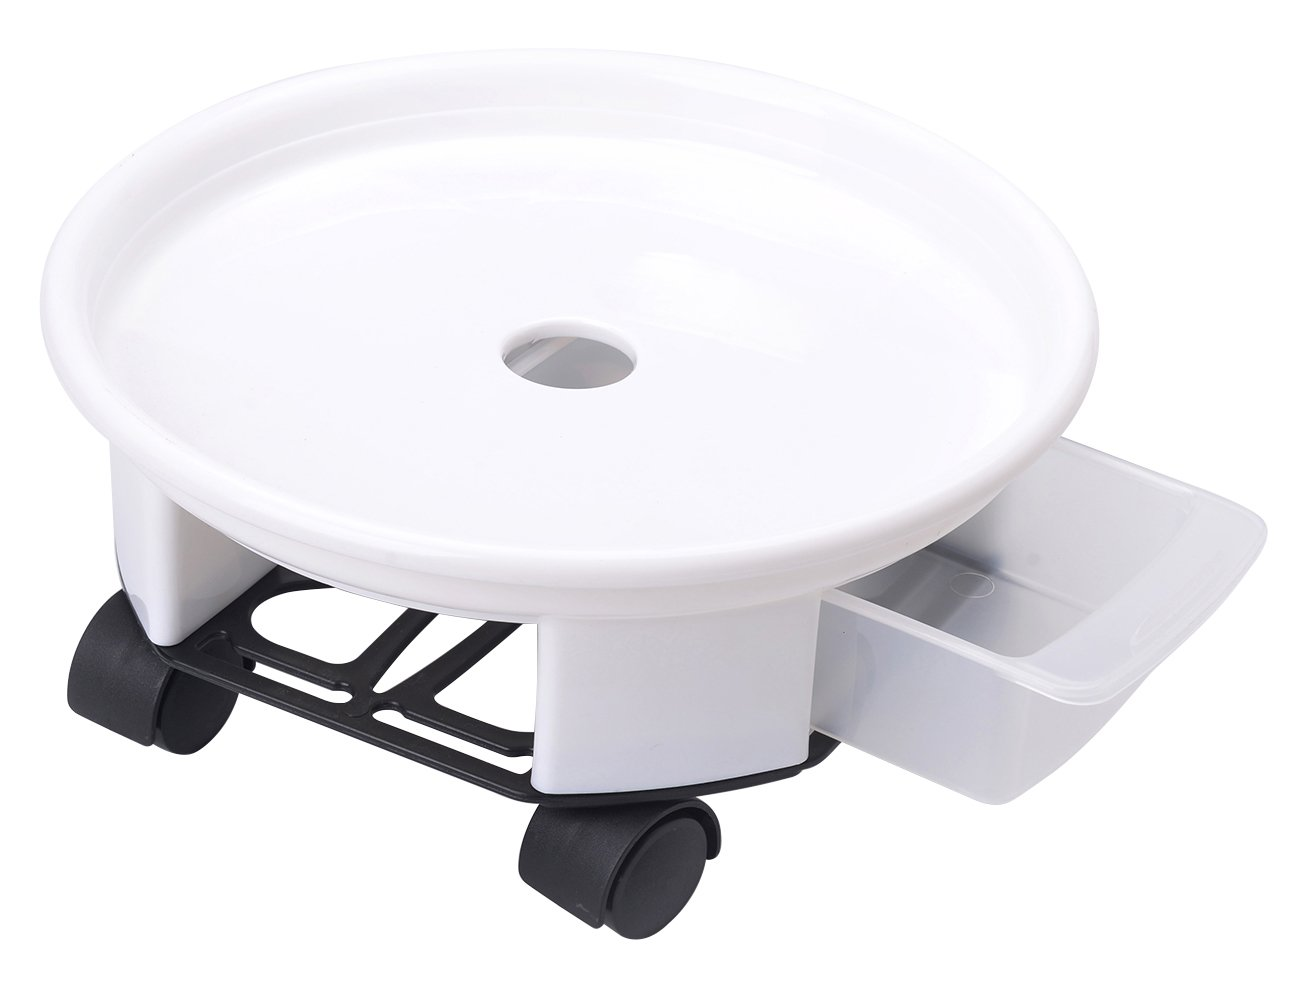 14'' Plant Caddy,Round Plant Dolly Trolley Saucer Moving Tray Pallet with Wheels and a Water Container,White,80 Count by Zhanwang